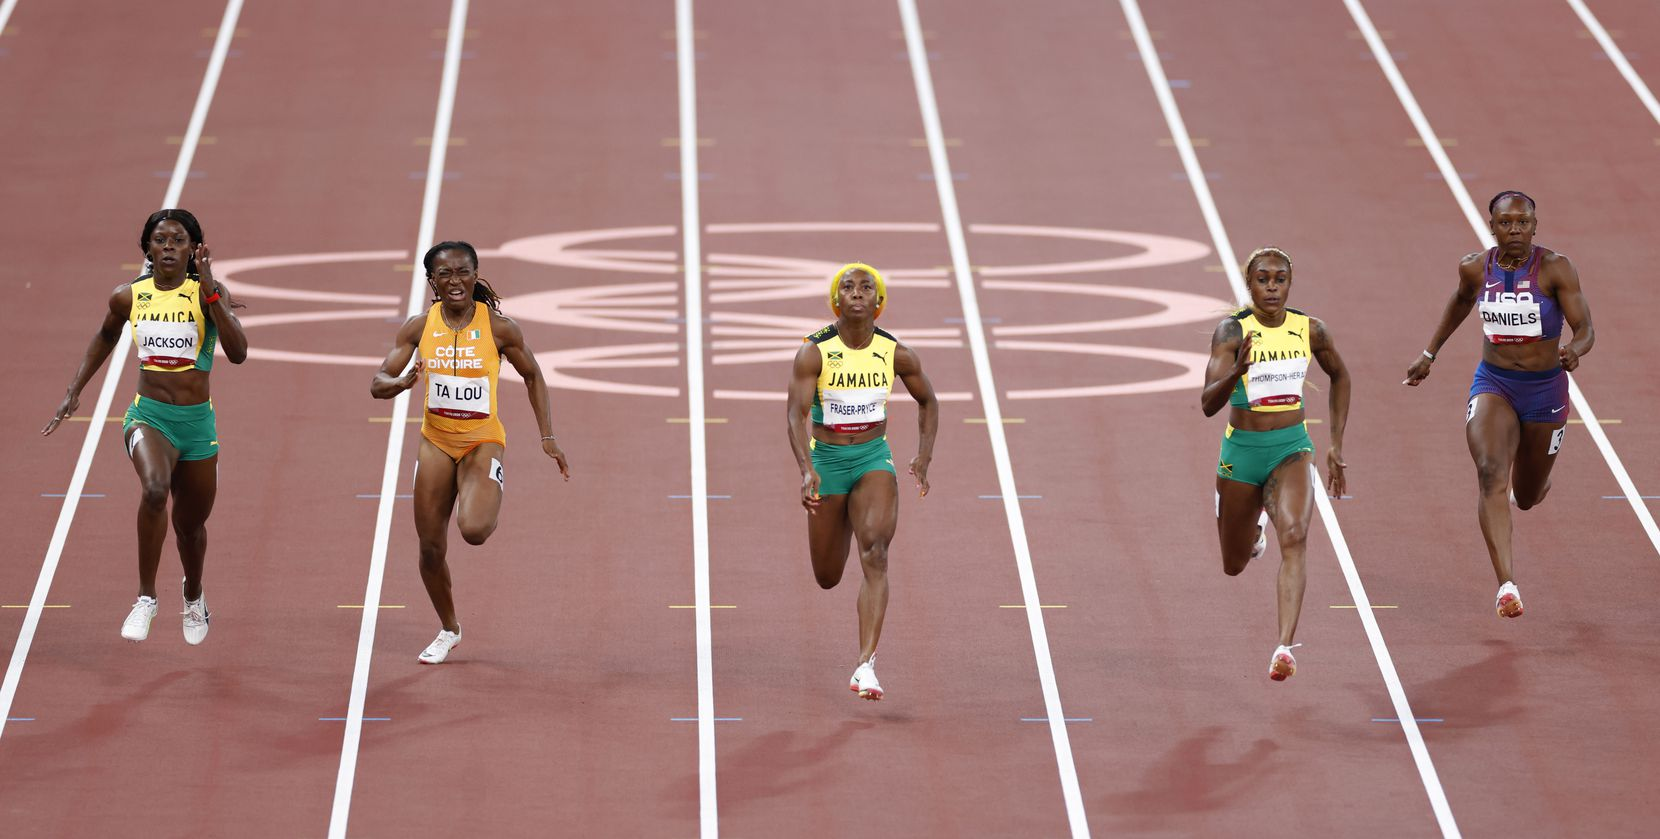 Jamaica's Shericka Jackson, Côte d'Ivoire's Marie-Josée Ta Lou, Jamaica's Shelly-Ann Fraser-Pryce, Jamaica's Elaine Thompson-Herah, and USA's Teahna Daniels compete in the women's 100 meter final race during the postponed 2020 Tokyo Olympics at Olympic Stadium, on Saturday, July 31, 2021, in Tokyo, Japan. Jamaica's Thompson-Herah took gold in the race. (Vernon Bryant/The Dallas Morning News)